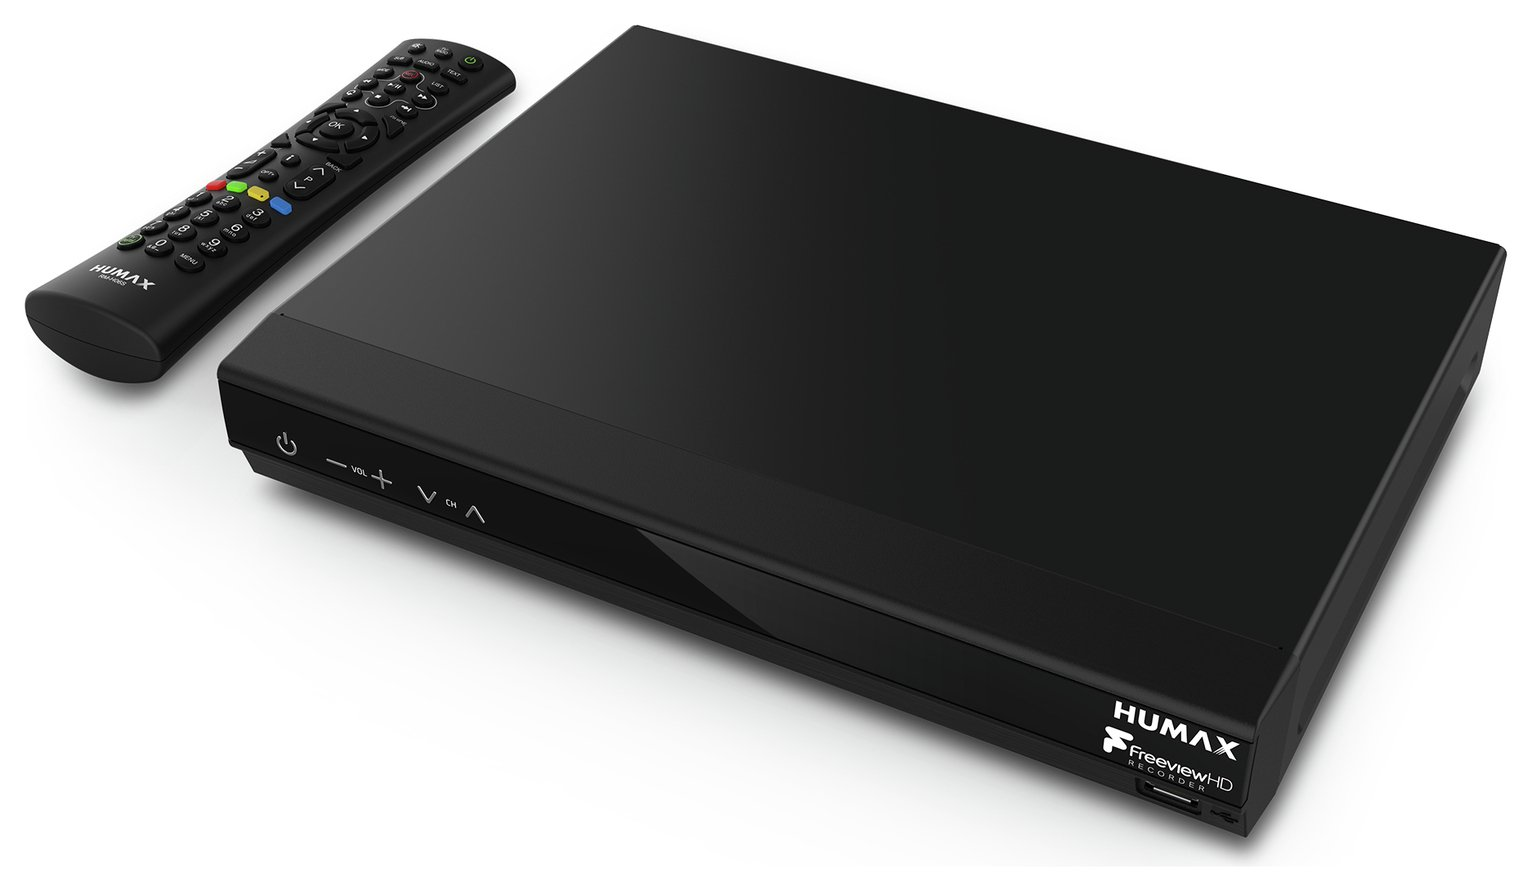 Humax HDR-1800T 320GB Freeview+ HD Smart Digital TV Recorder